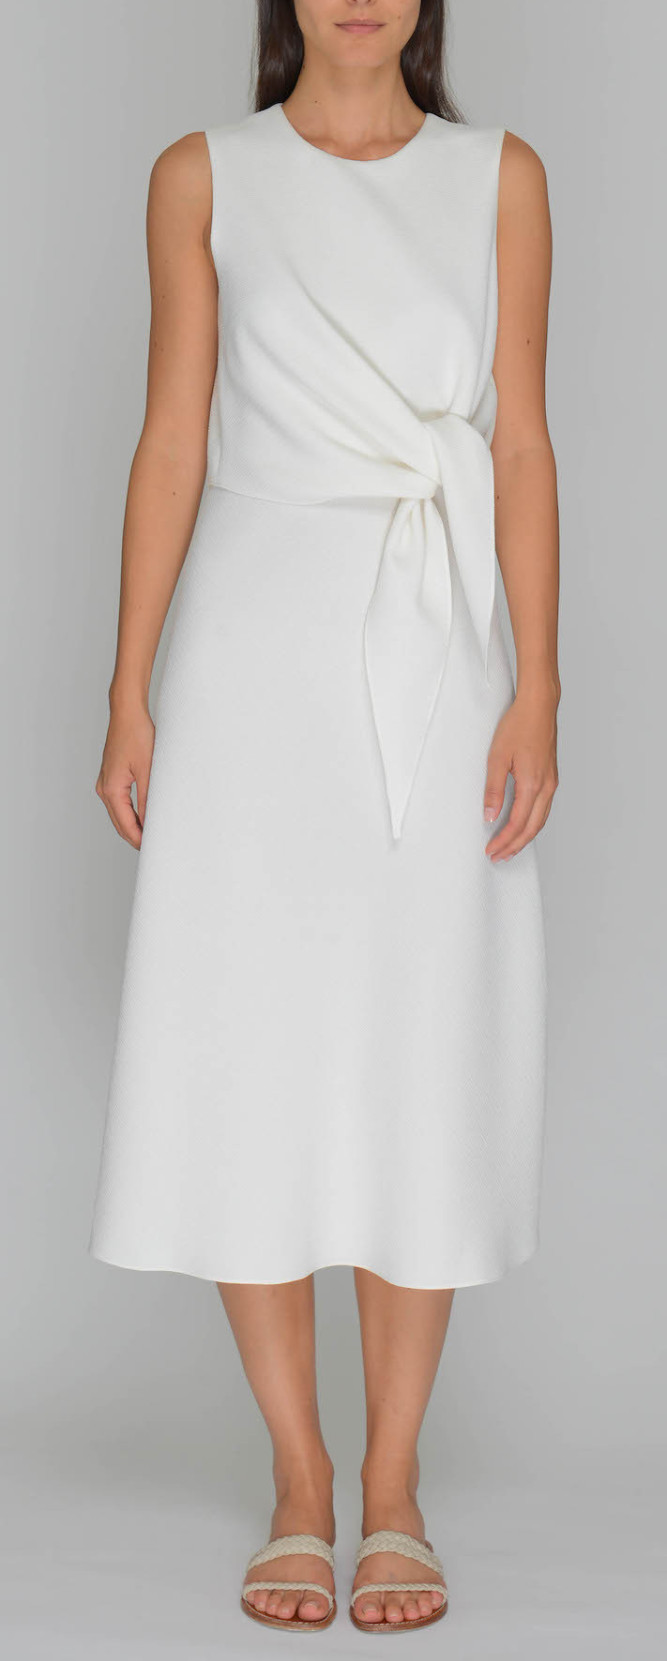 Svilu Crepe Dress $475